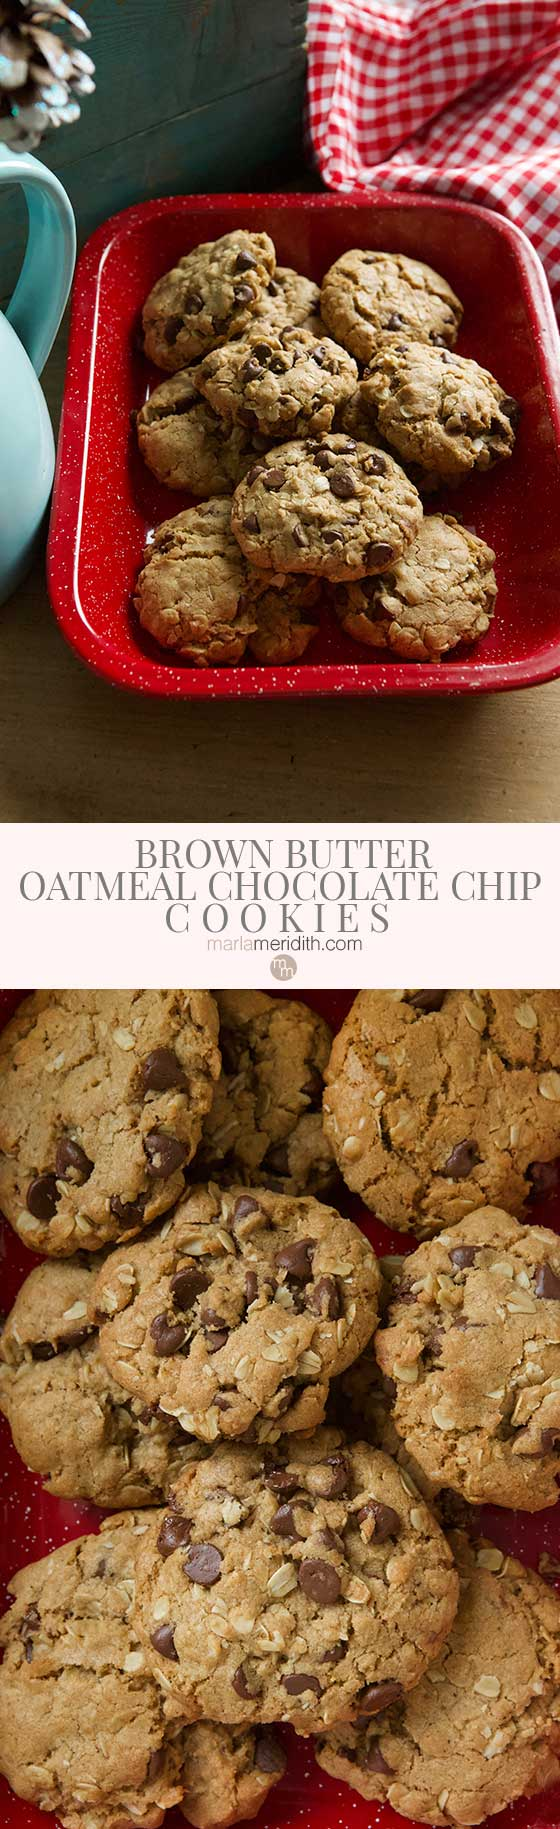 This recipe for Brown Butter Oatmeal Chocolate Chip Cookies will quickly become your favorite. They come together super quickly and will be devoured in minutes! MarlaMeridith.com